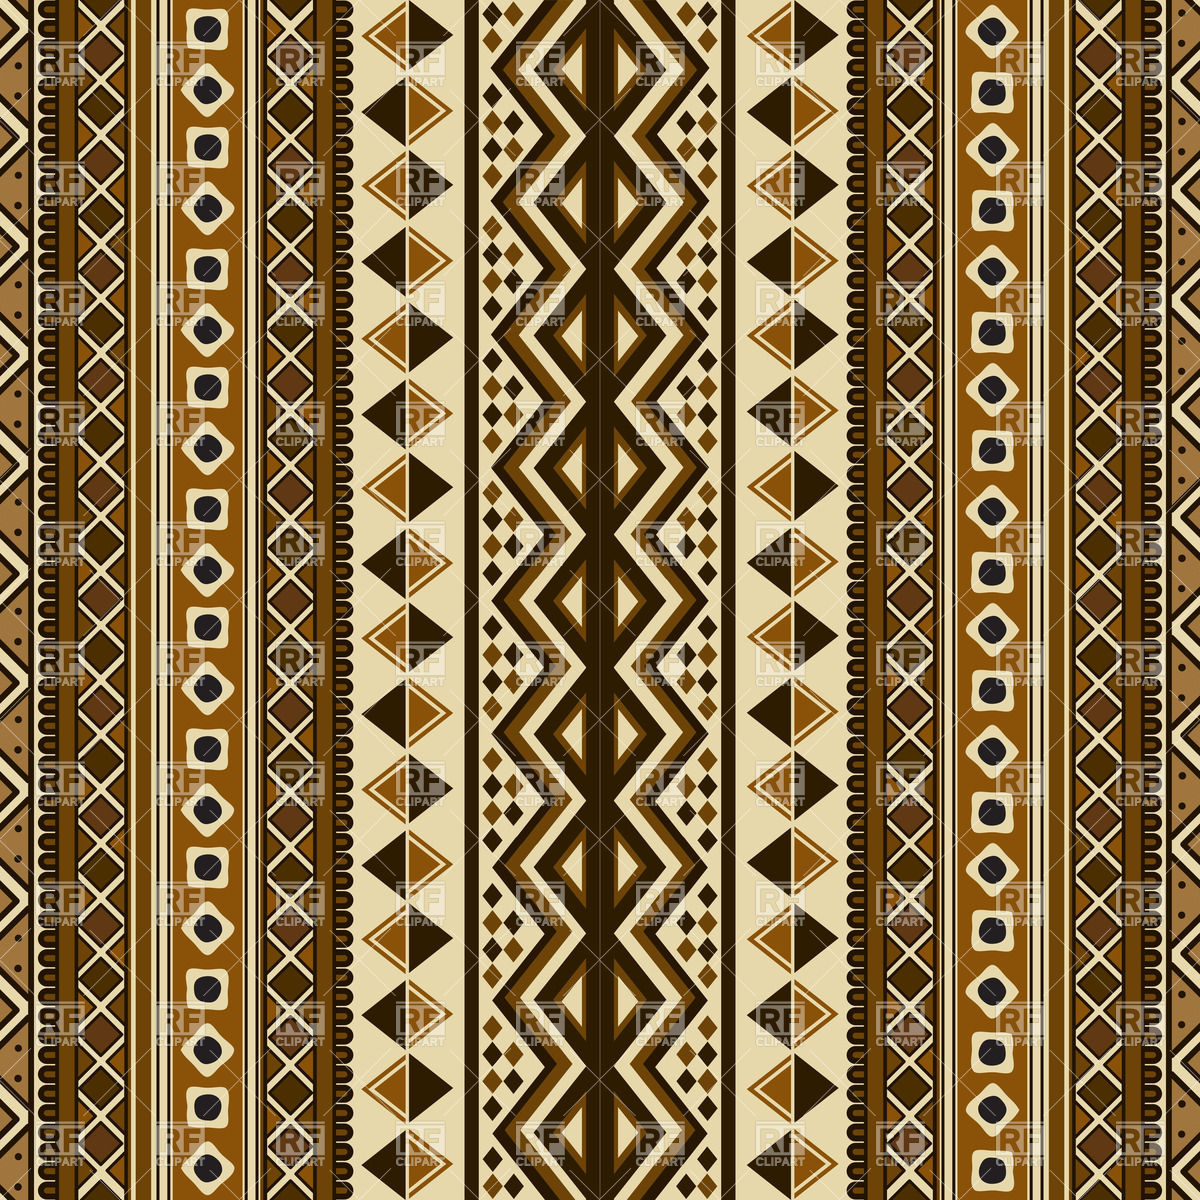 1200x1200 Ethnic Pattern Design Vector Image Vector Artwork Of Backgrounds